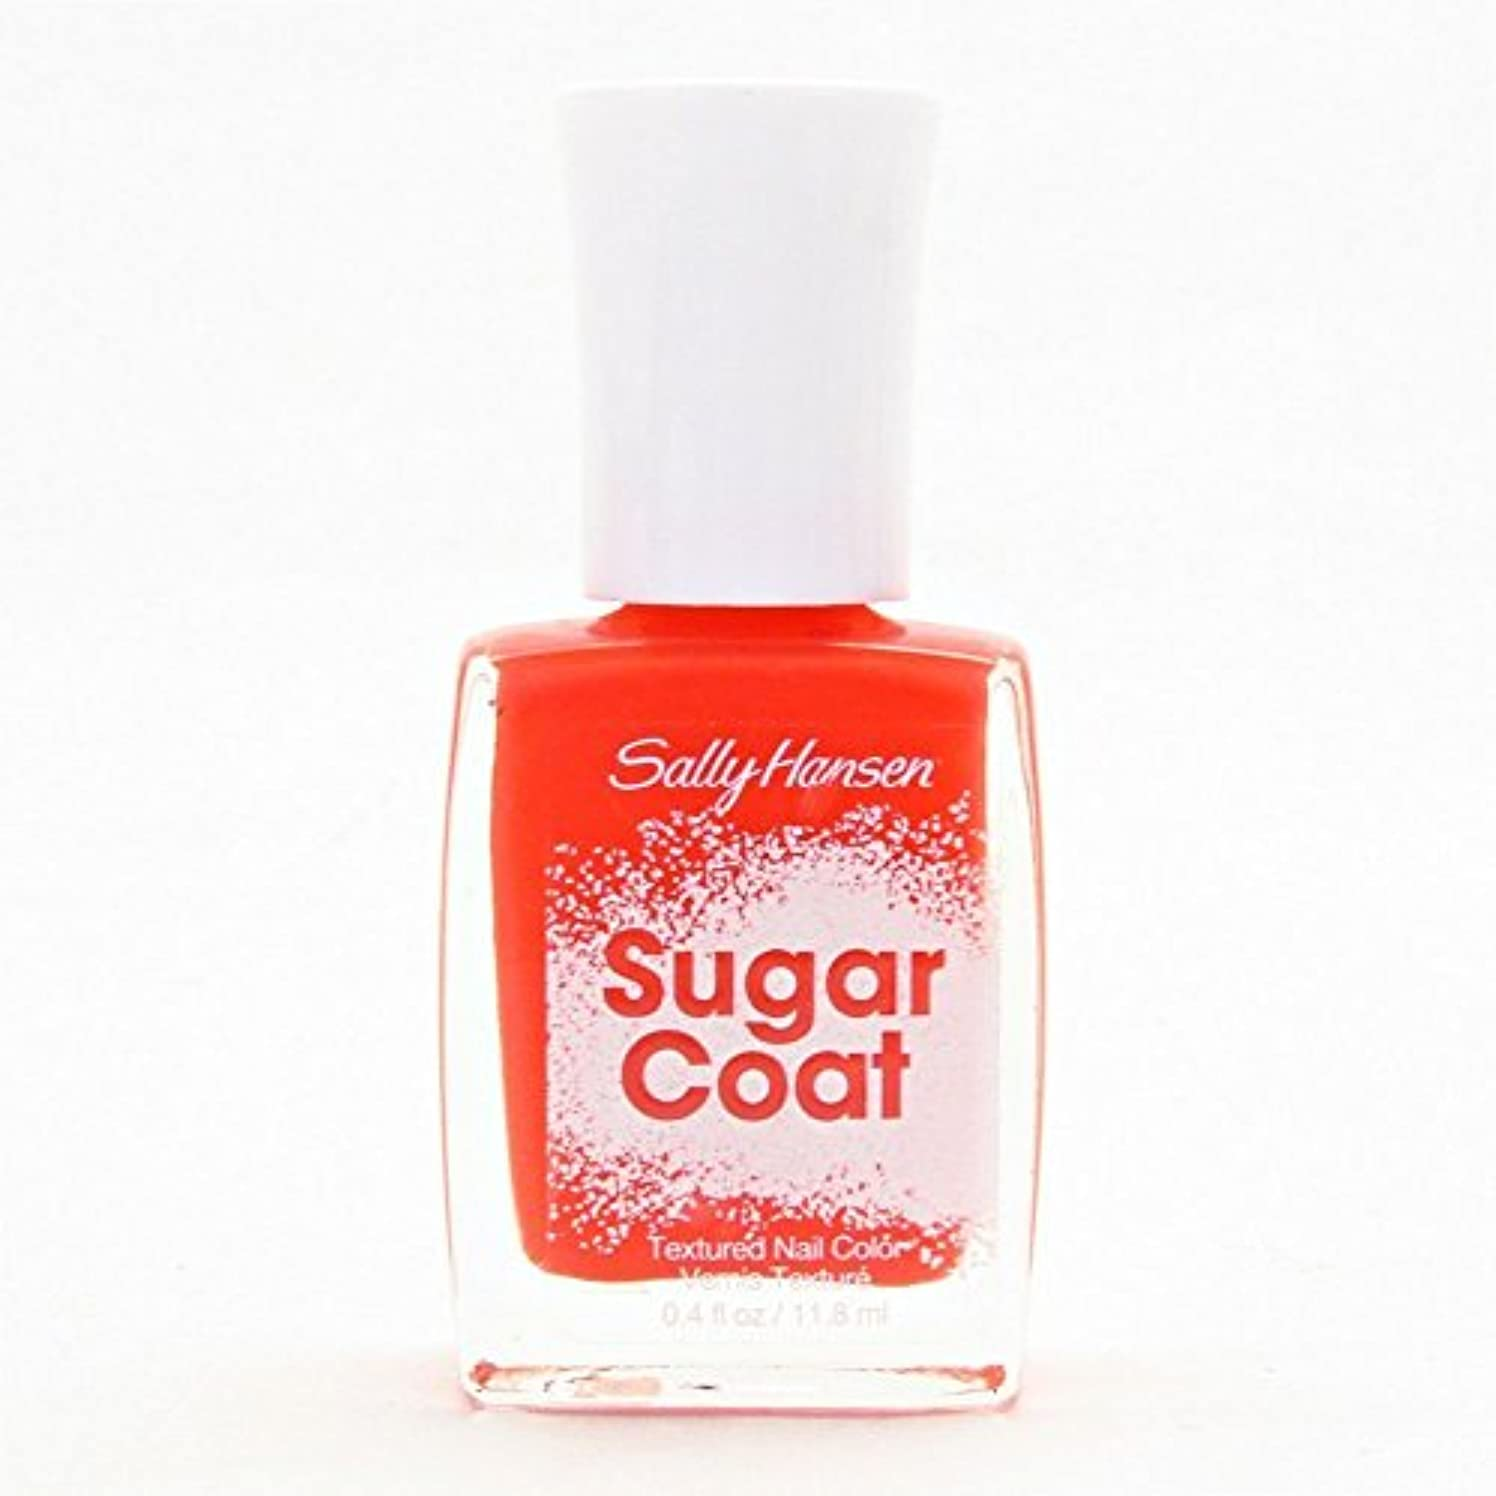 SALLY HANSEN SUGAR COAT TEXTURED NAIL COLOR #260 CANDY CORN